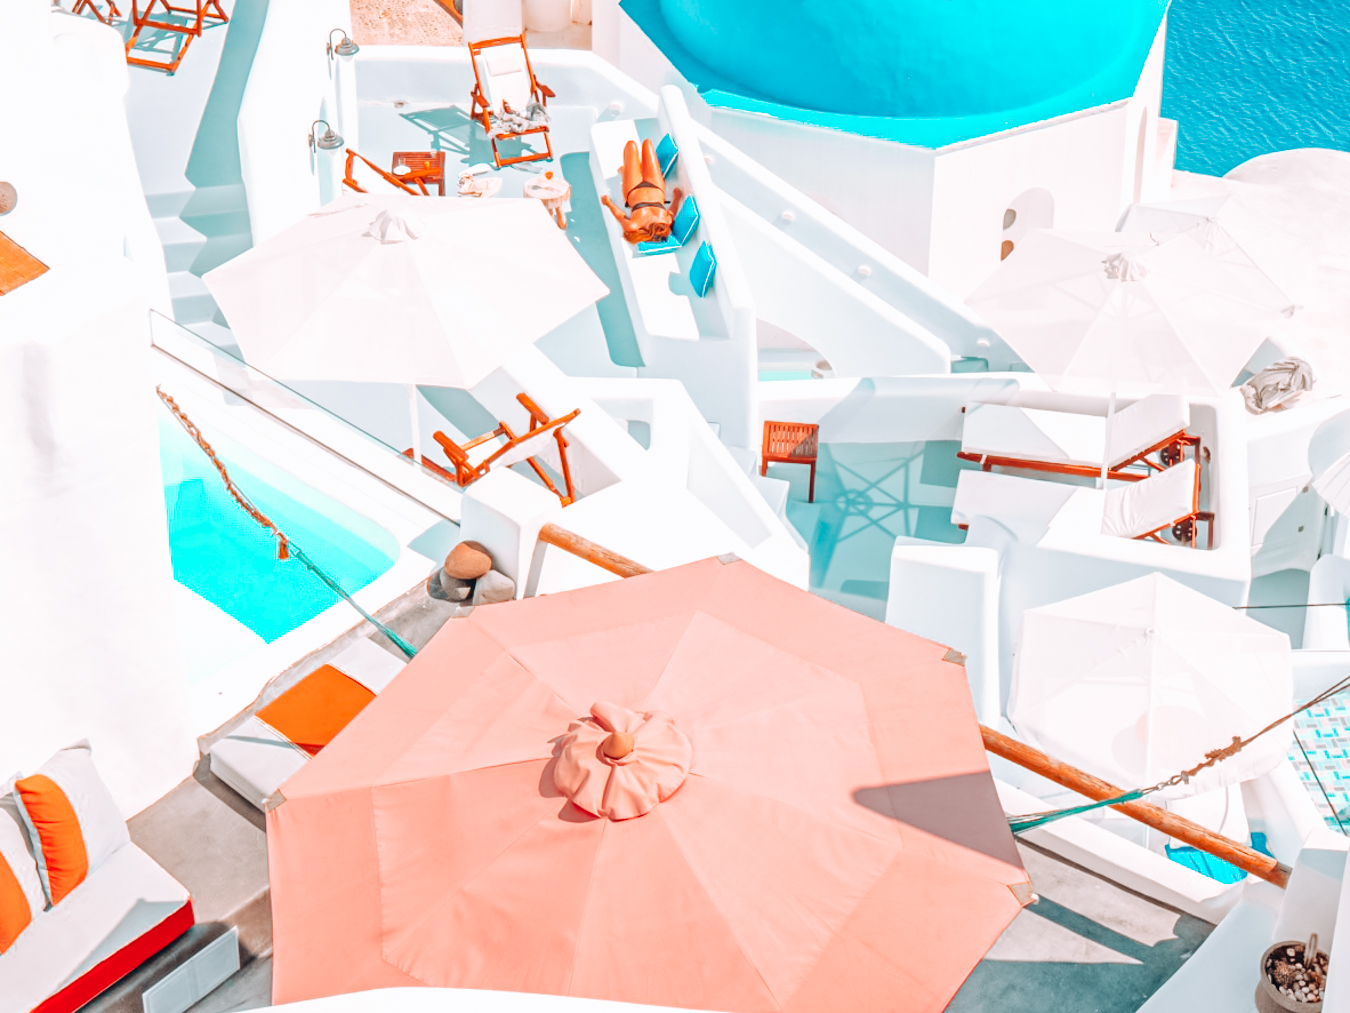 Pool and terraces of a hotel in Santorini